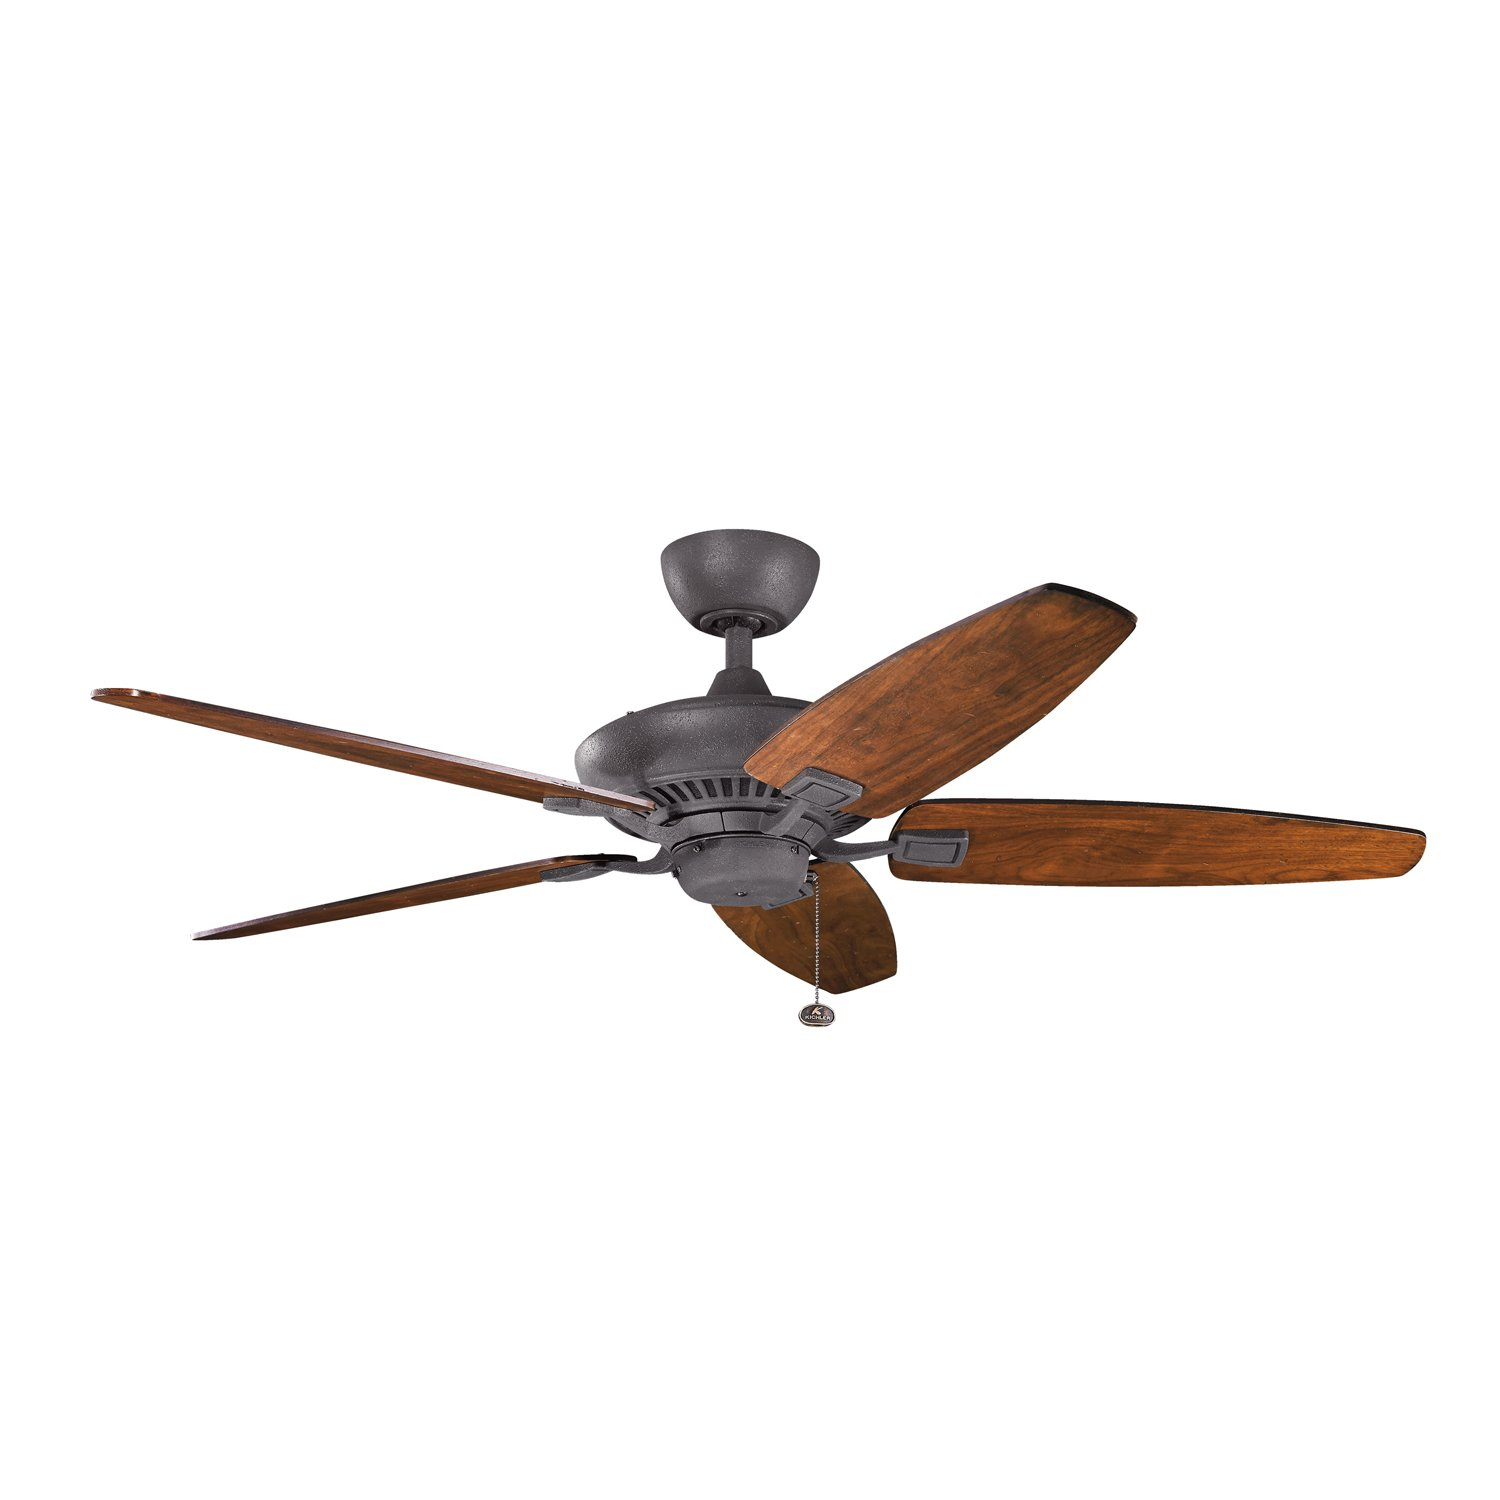 Kichler DBK 52 Ceiling Fan Amazon